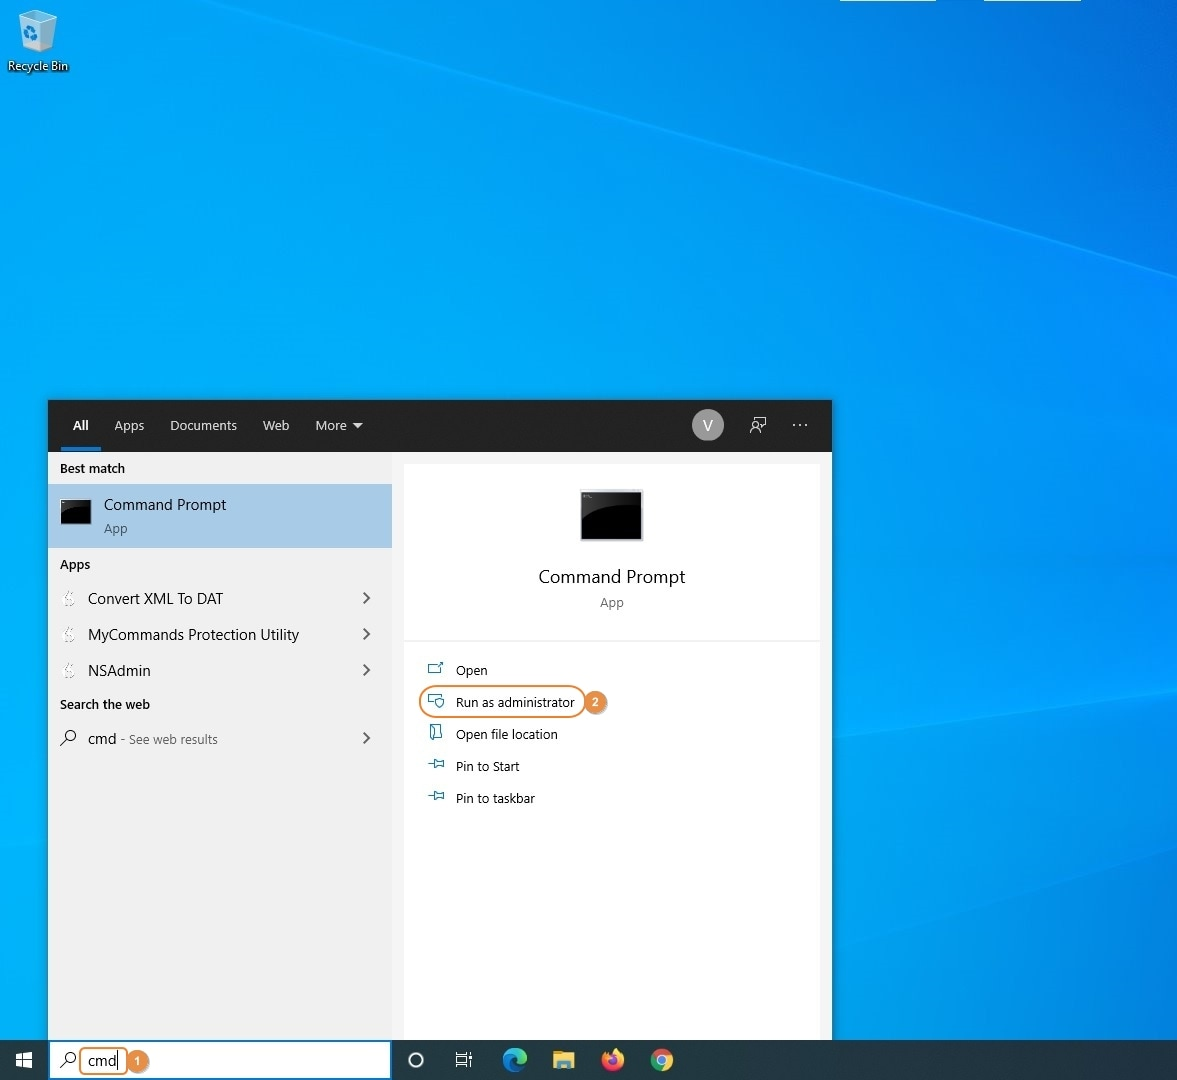 launch elevated command prompt